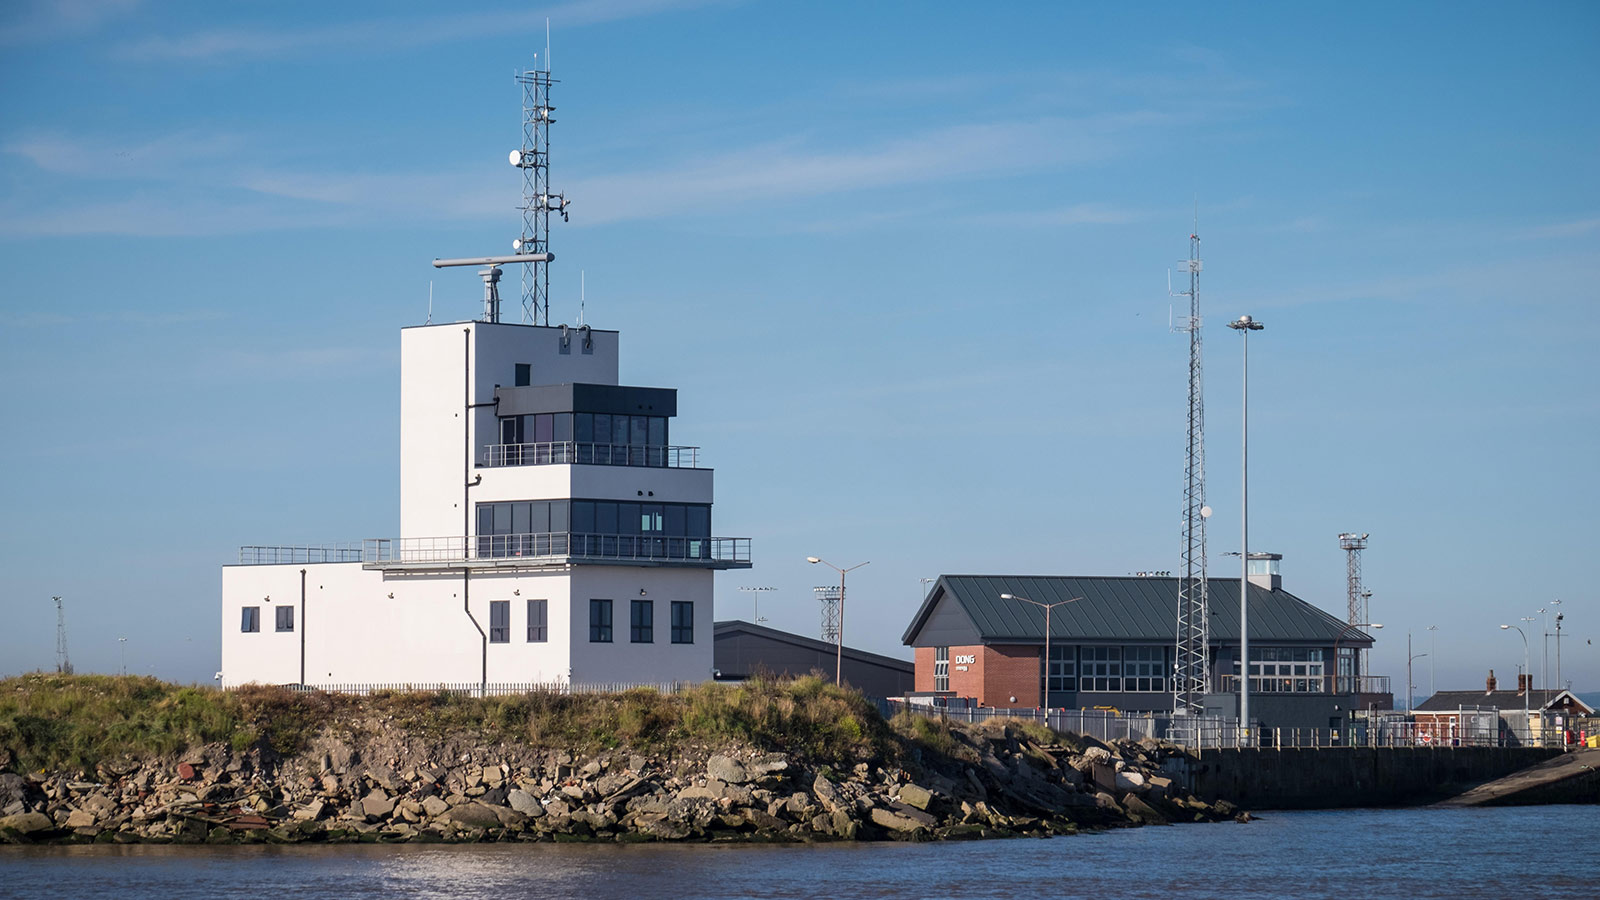 Waterfront view of the Humber Marine Control Centre